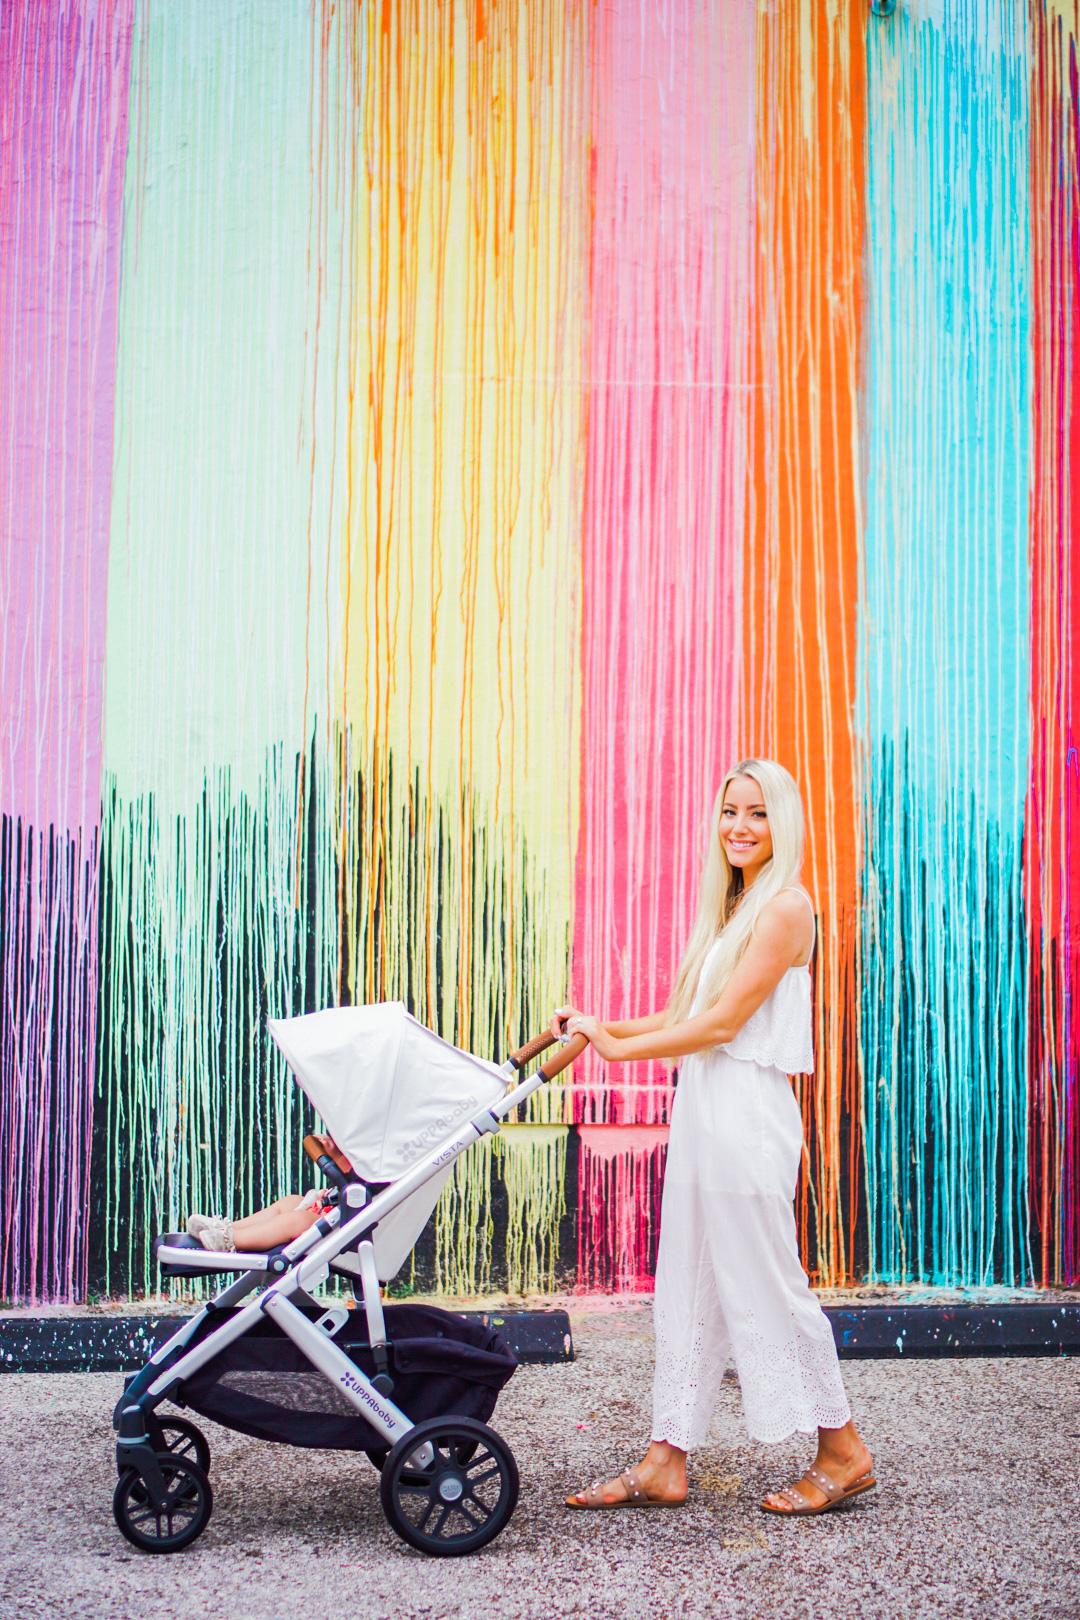 Katelyn Jones A Touch of Pink Blog 2017 Uppababy Vista Stroller Review